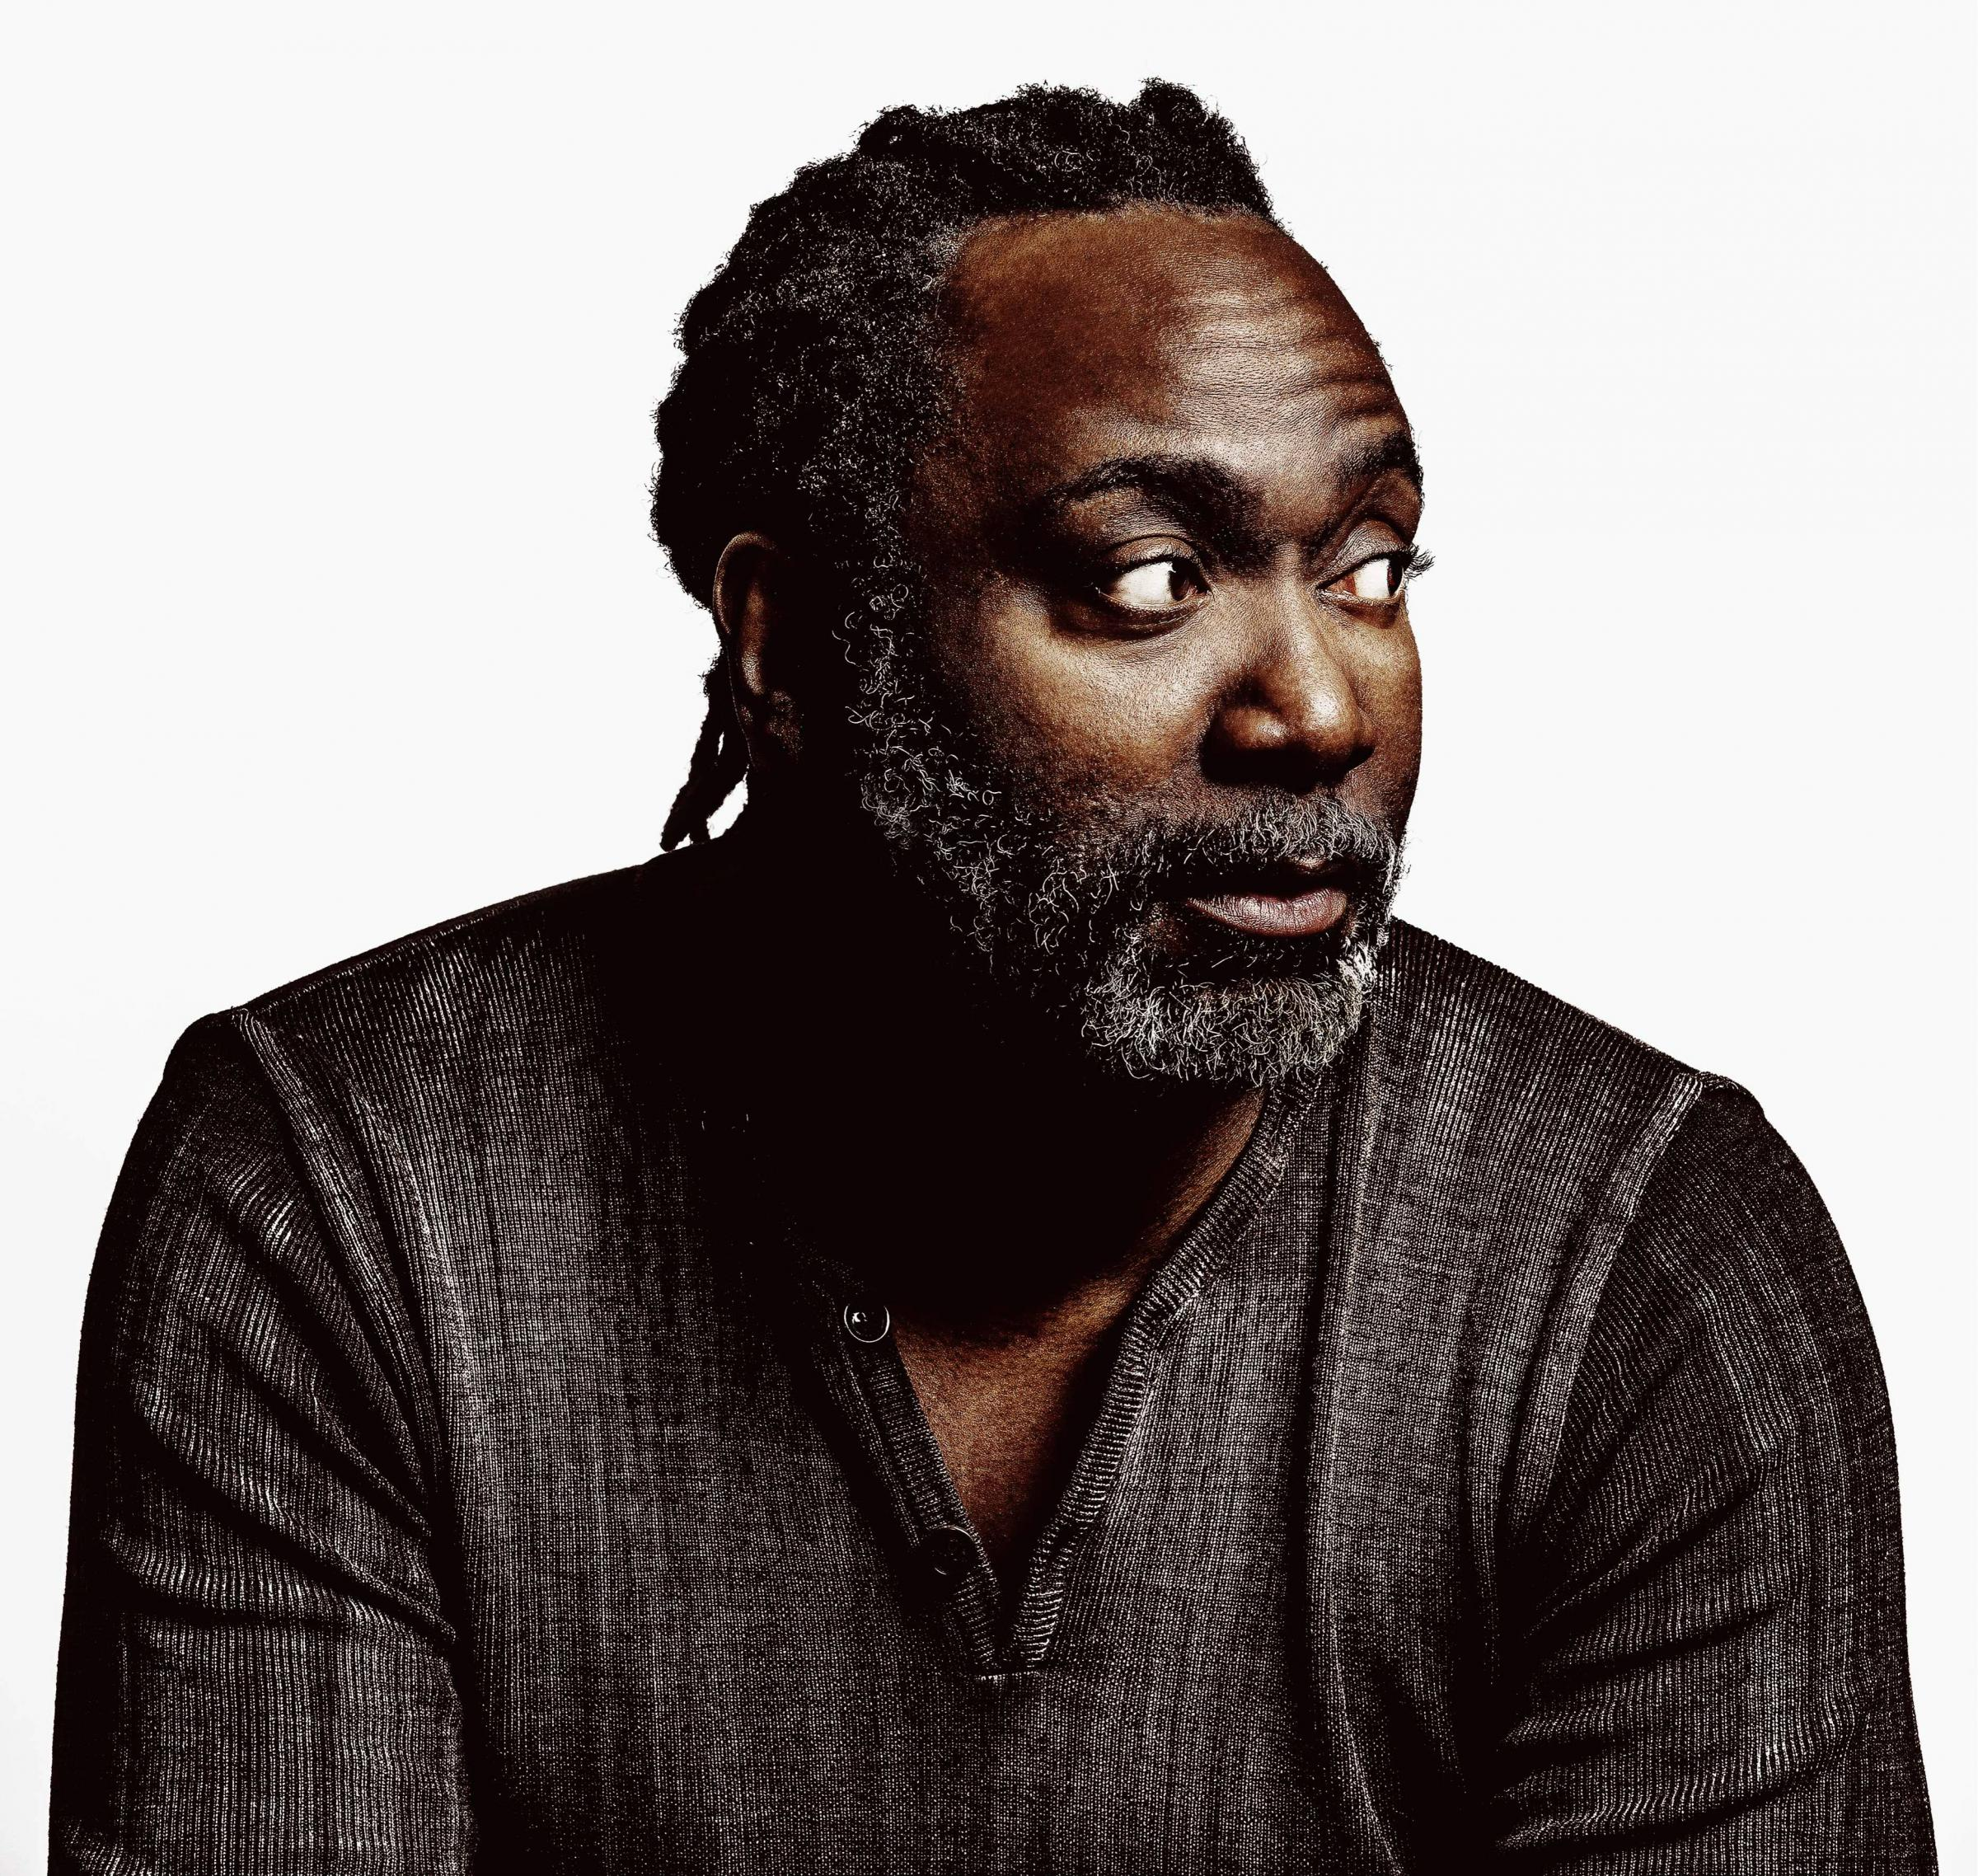 Reginald D Hunter will play Outside the Box on October 24 and 25.